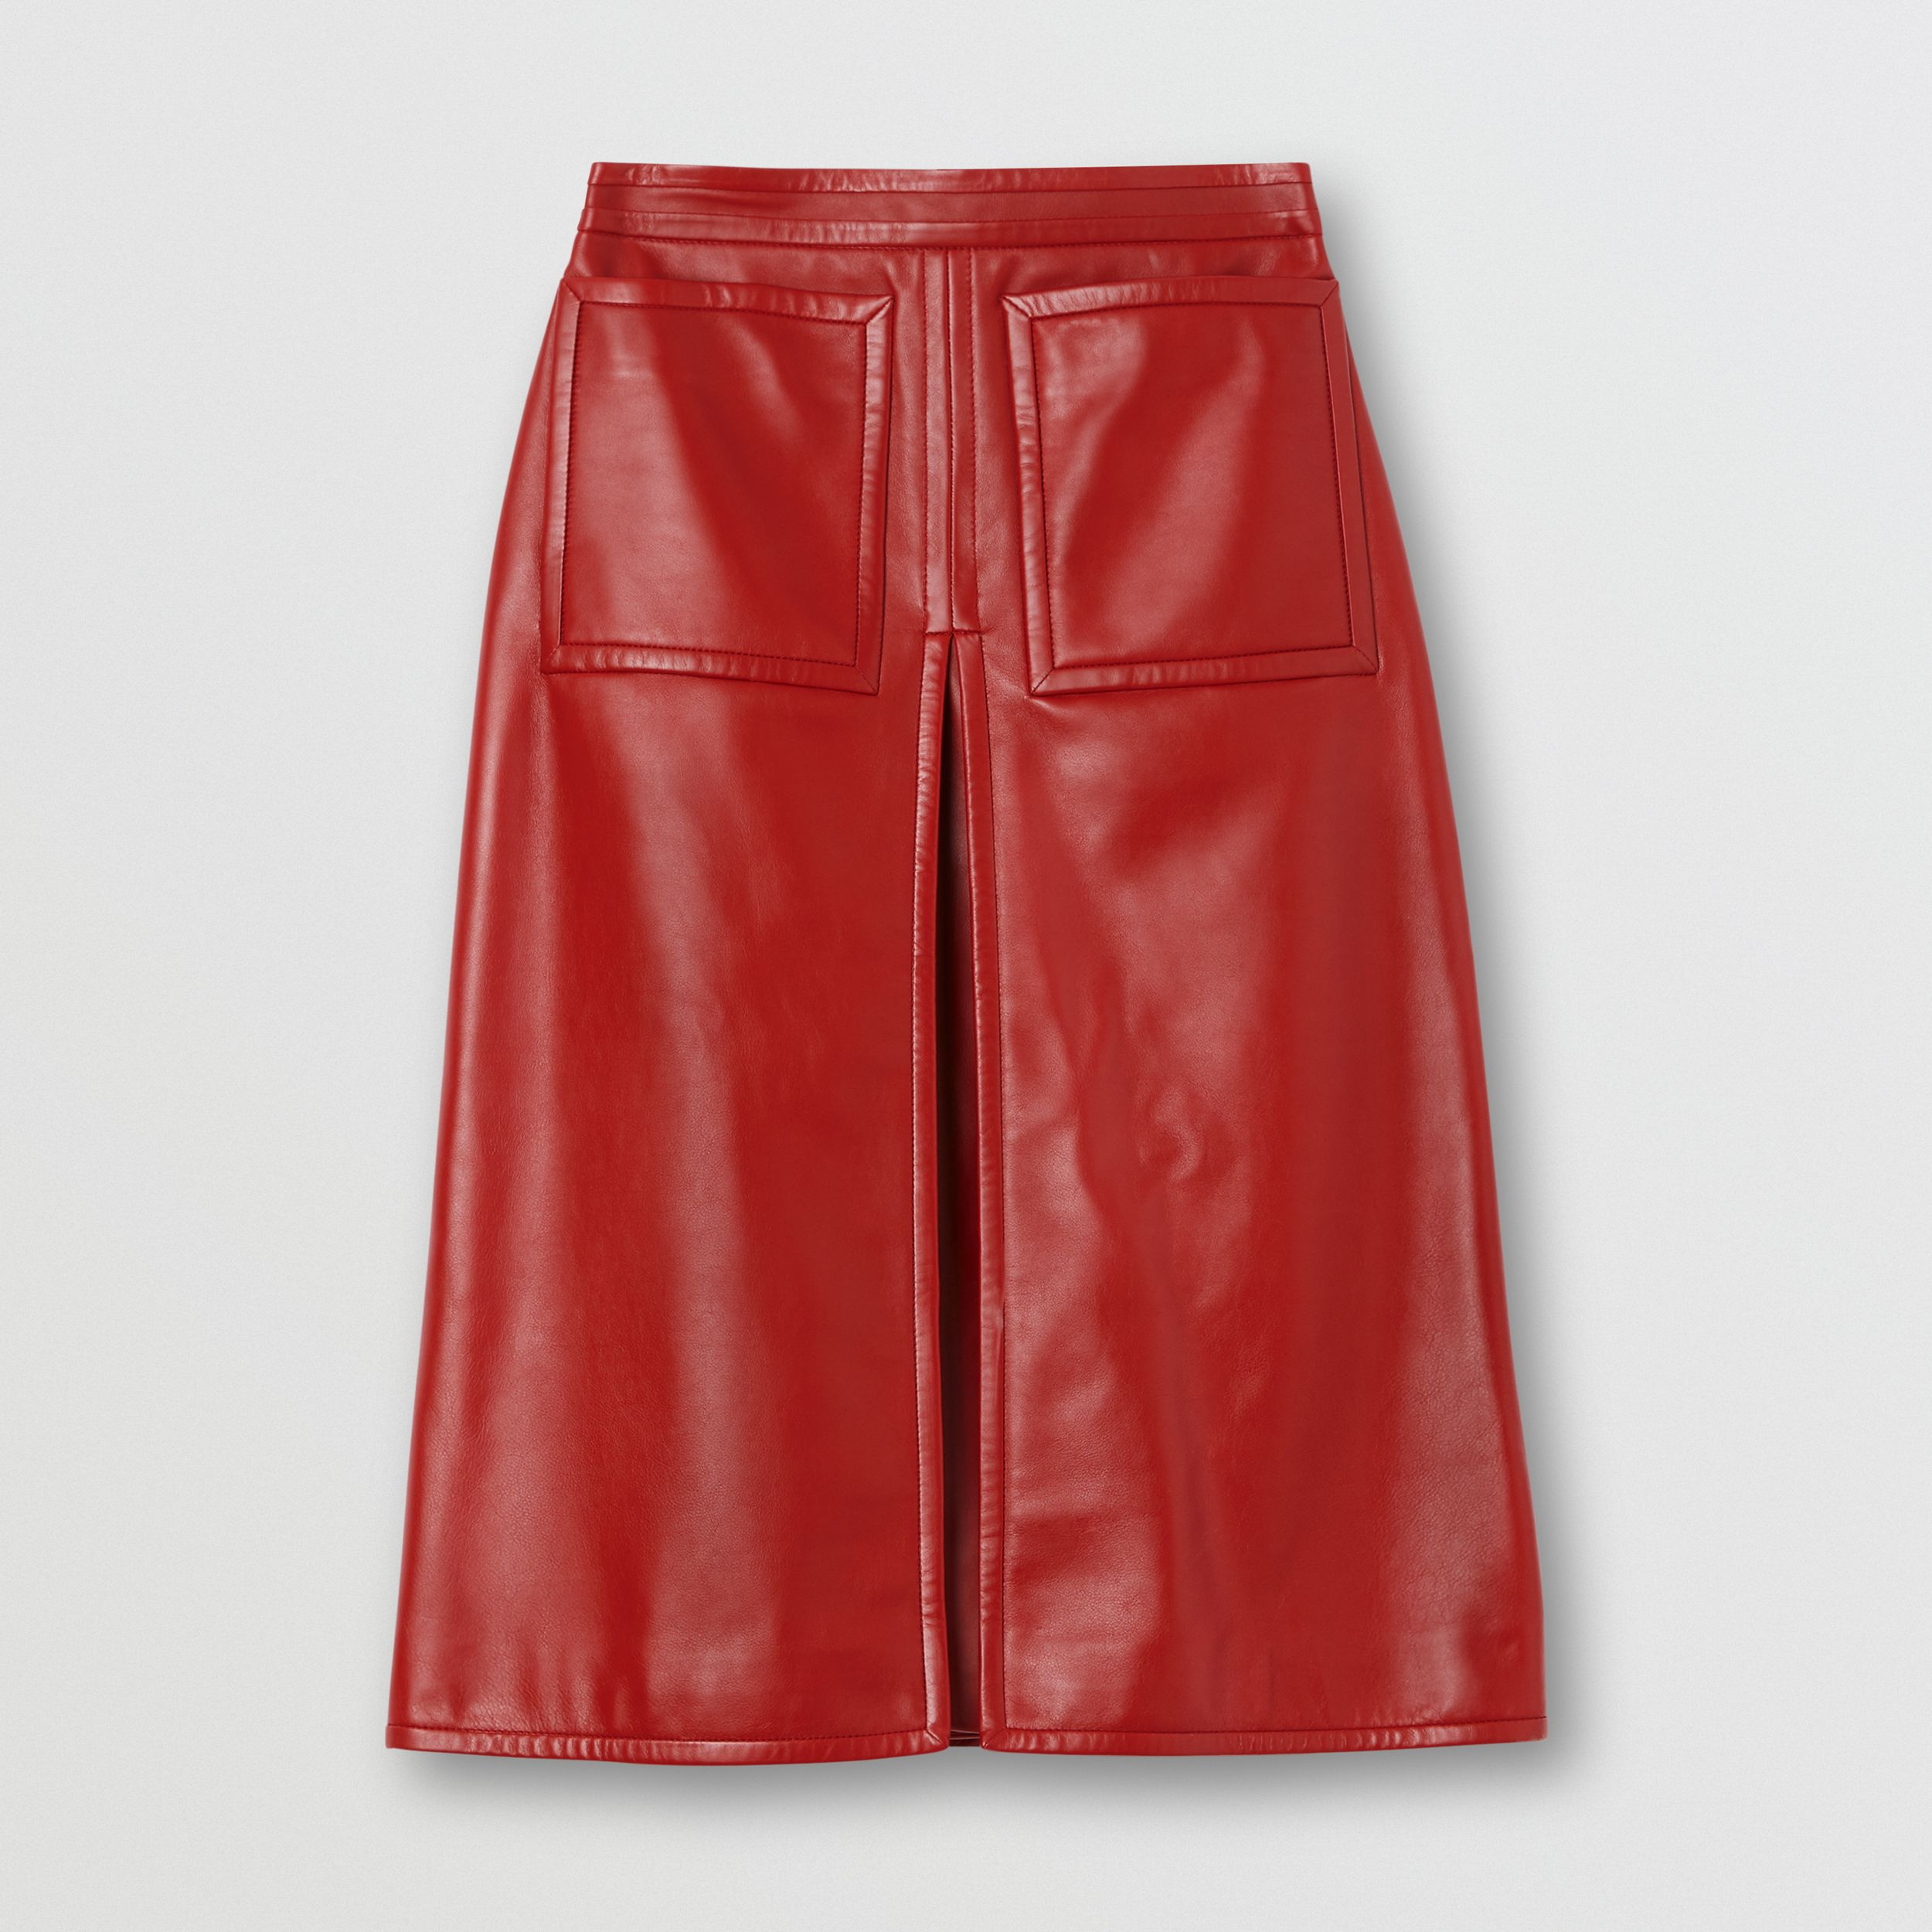 Box-pleat Detail Leather A-line Skirt in Dark Carmine - Women | Burberry United States - 4